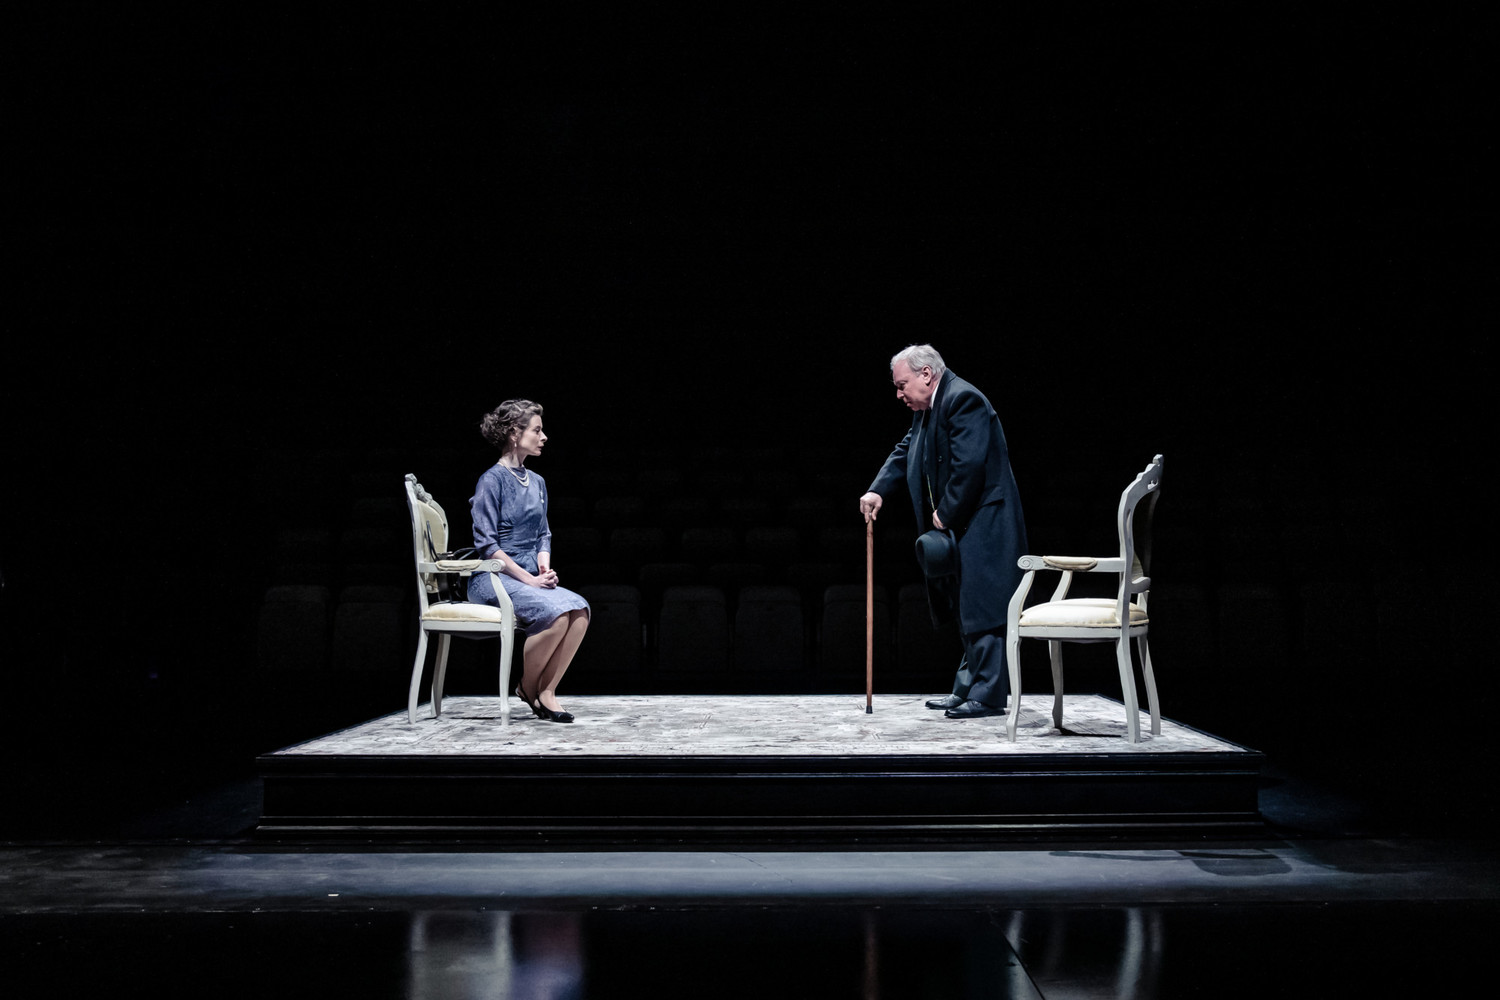 BWW Review: THE AUDIENCE, Nuffield Southampton Theatres